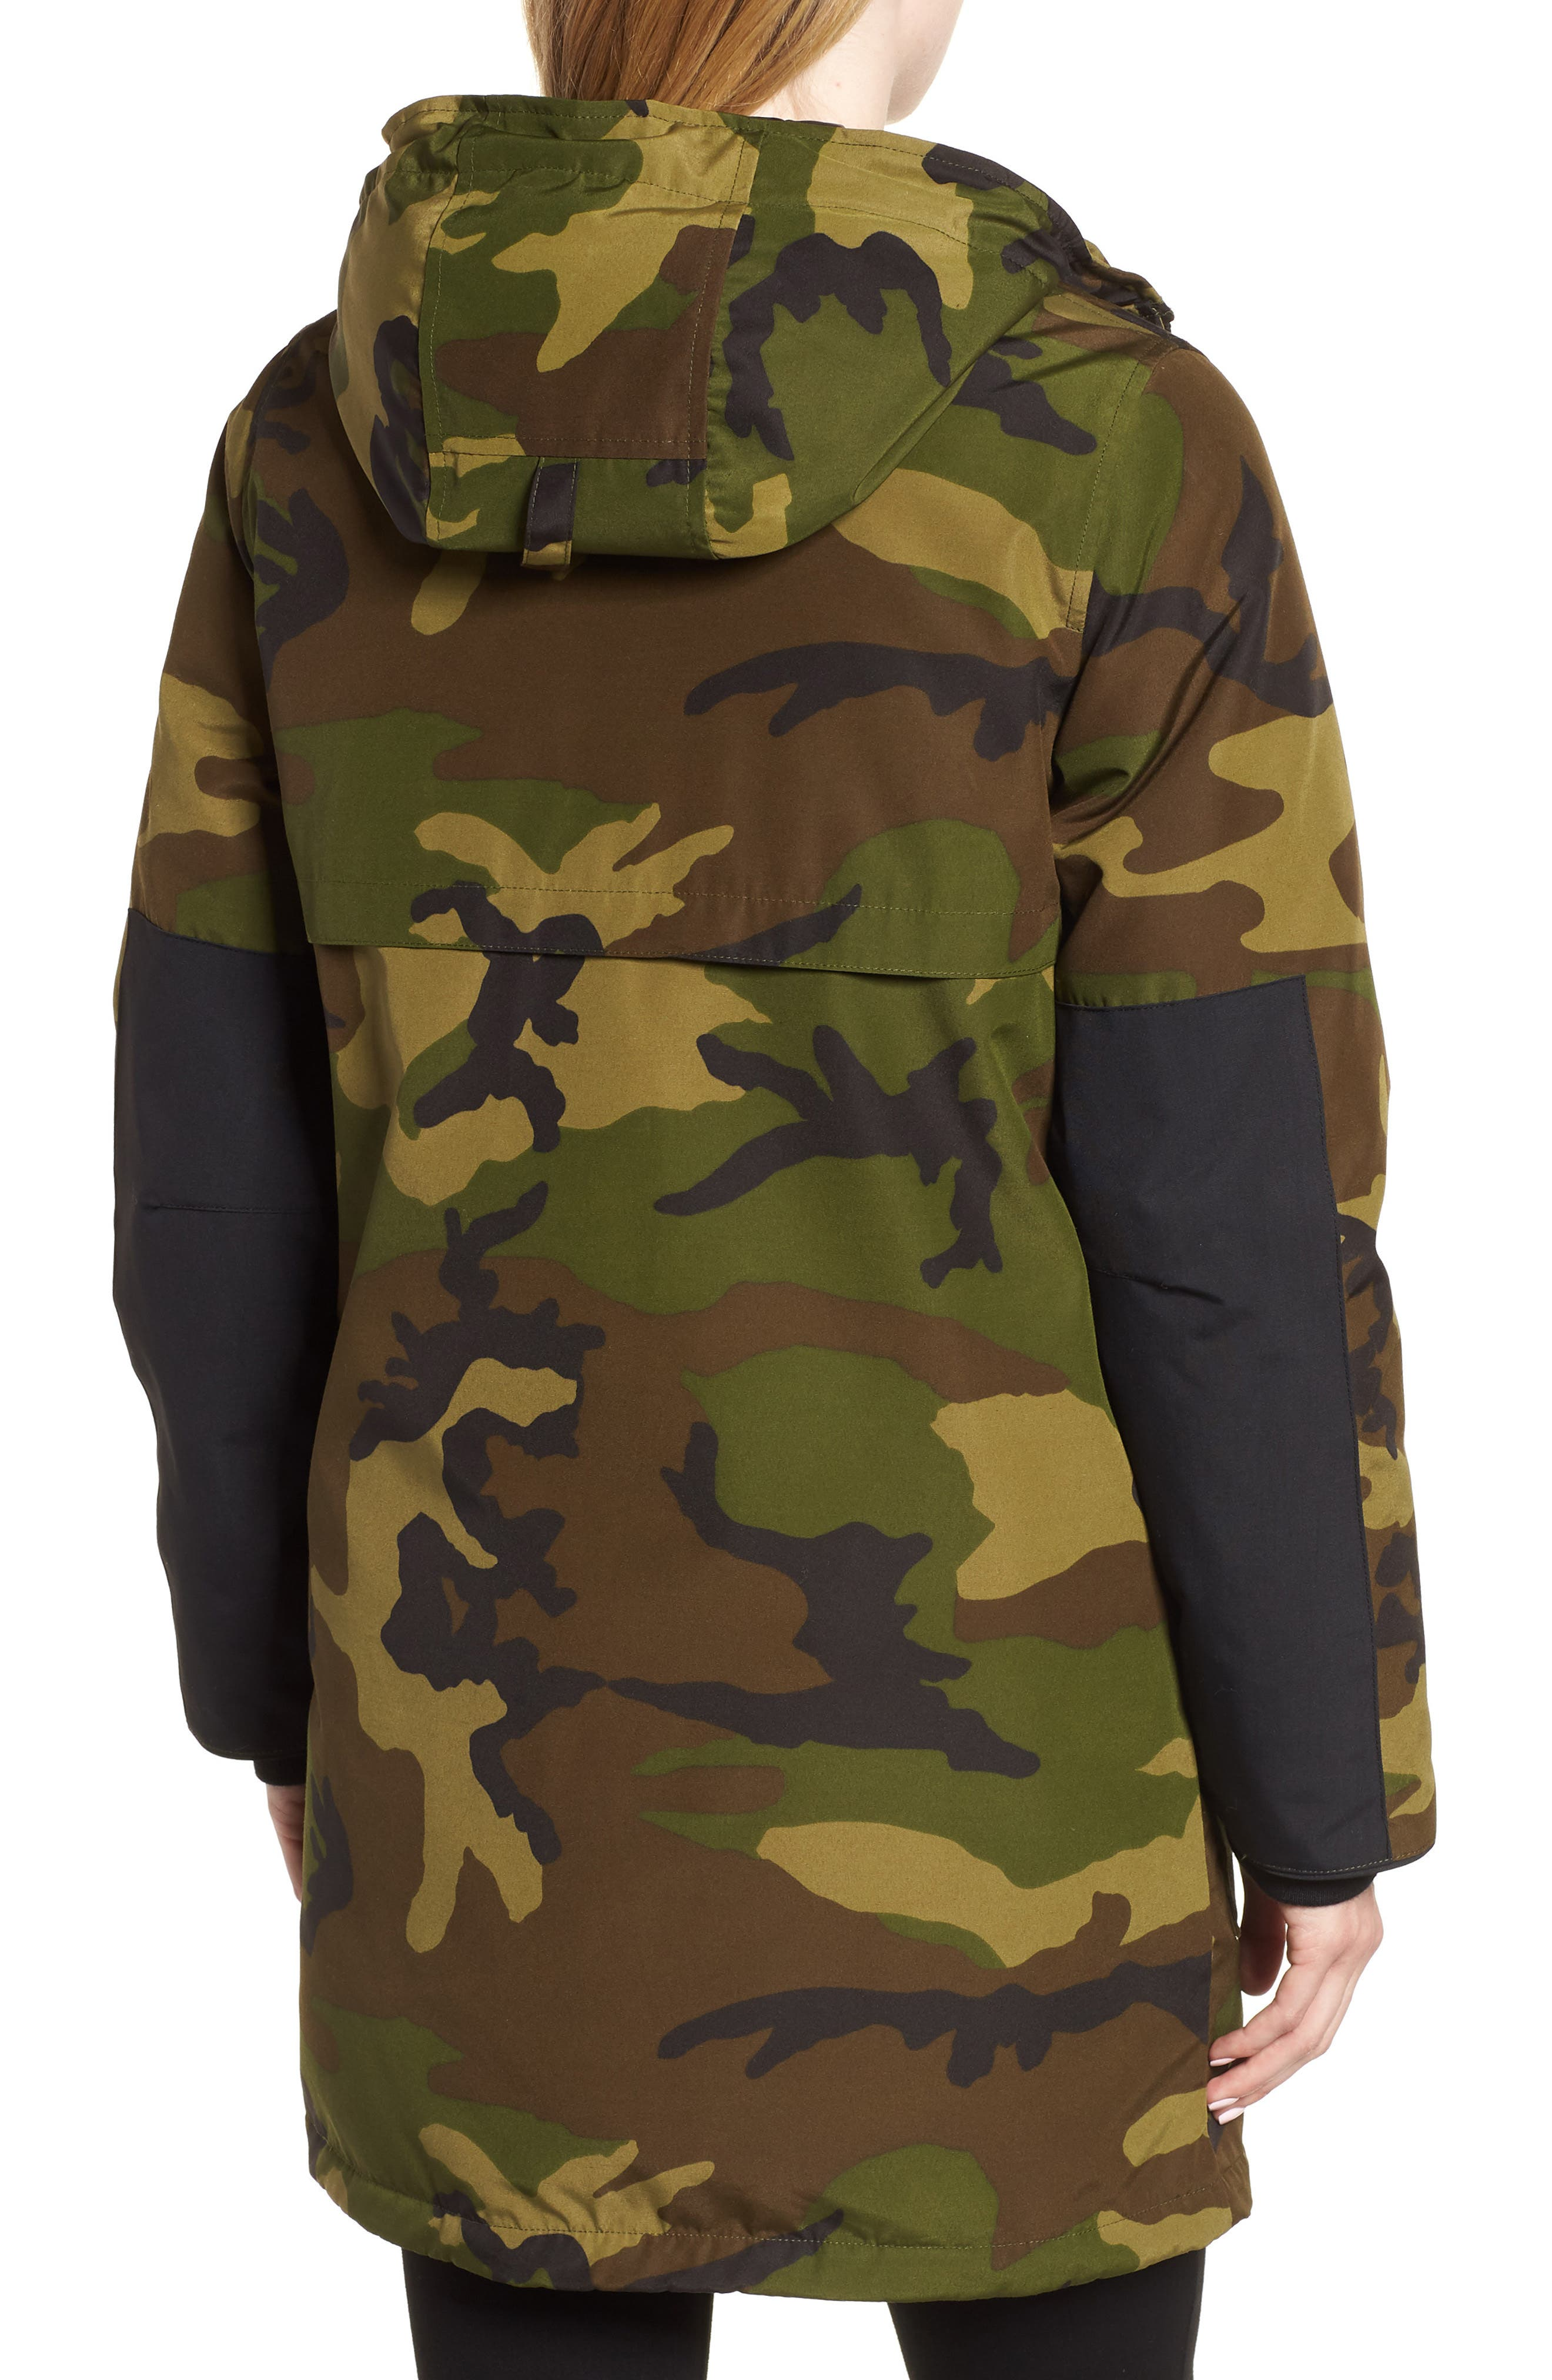 Canmore 625 Fill Power Down Parka,                             Alternate thumbnail 2, color,                             CLASSIC CAMO